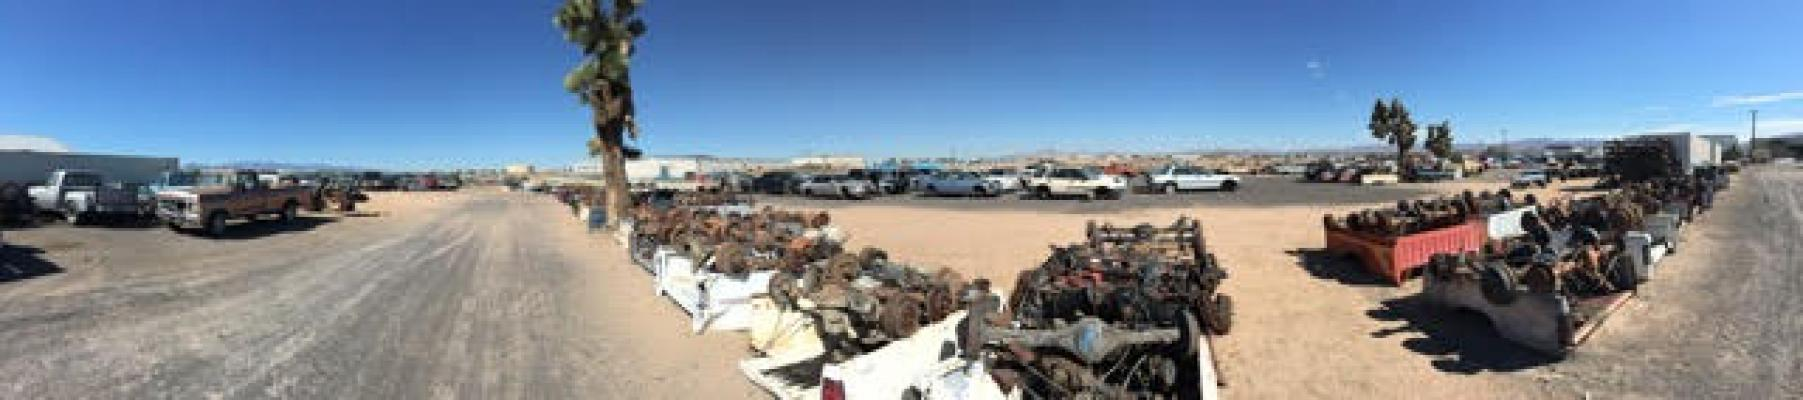 Los Angeles Auto Salvage Yard With Property For Sale